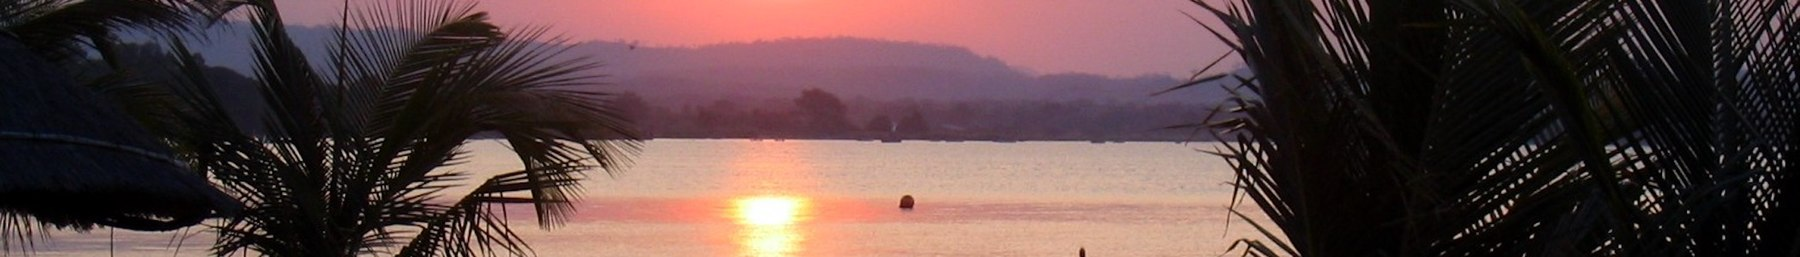 WV banner Lake Malawi National Park Sunset.jpg